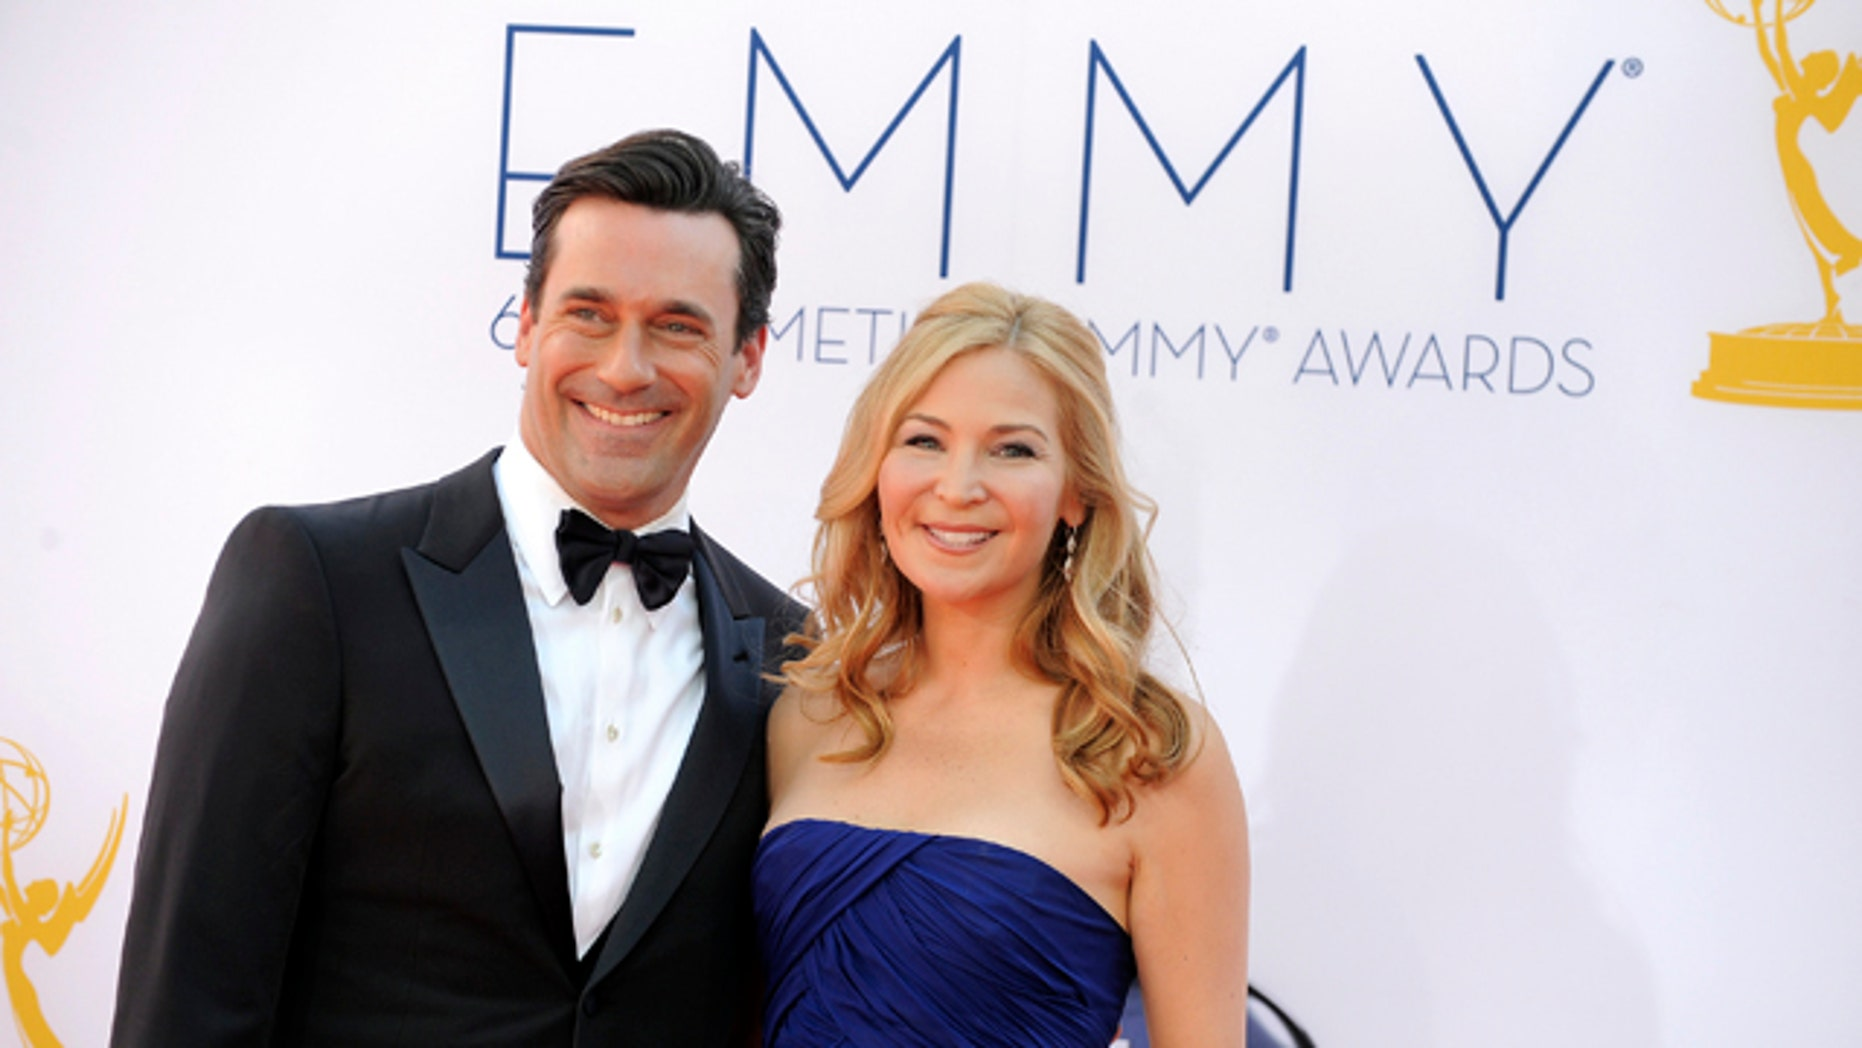 Sept. 23, 2012: Jon Hamm, left and Jennifer Westfeldt arrive at the 64th Primetime Emmy Awards at the Nokia Theatre in Los Angeles.